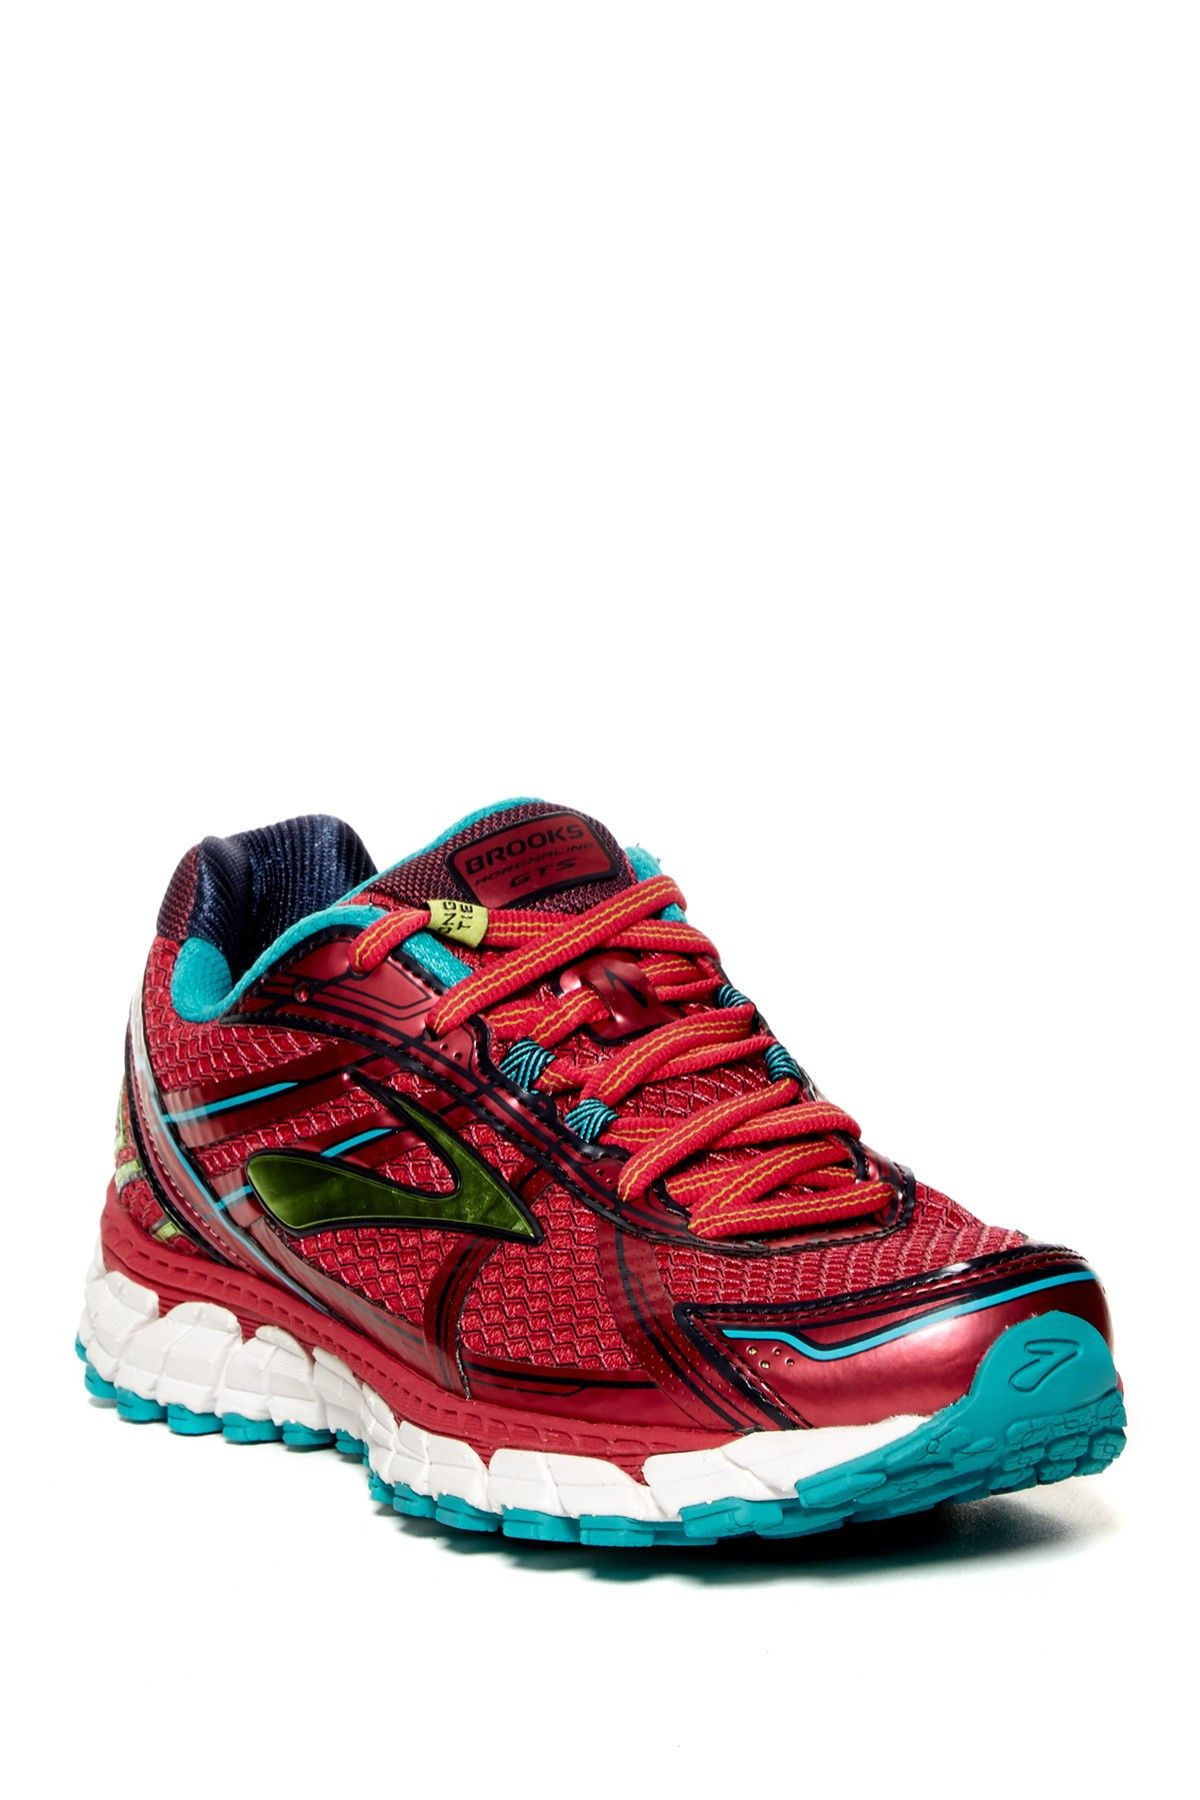 6c1a6c1323a Adrenaline GTS 15 Running Shoe - Multiple Widths Available